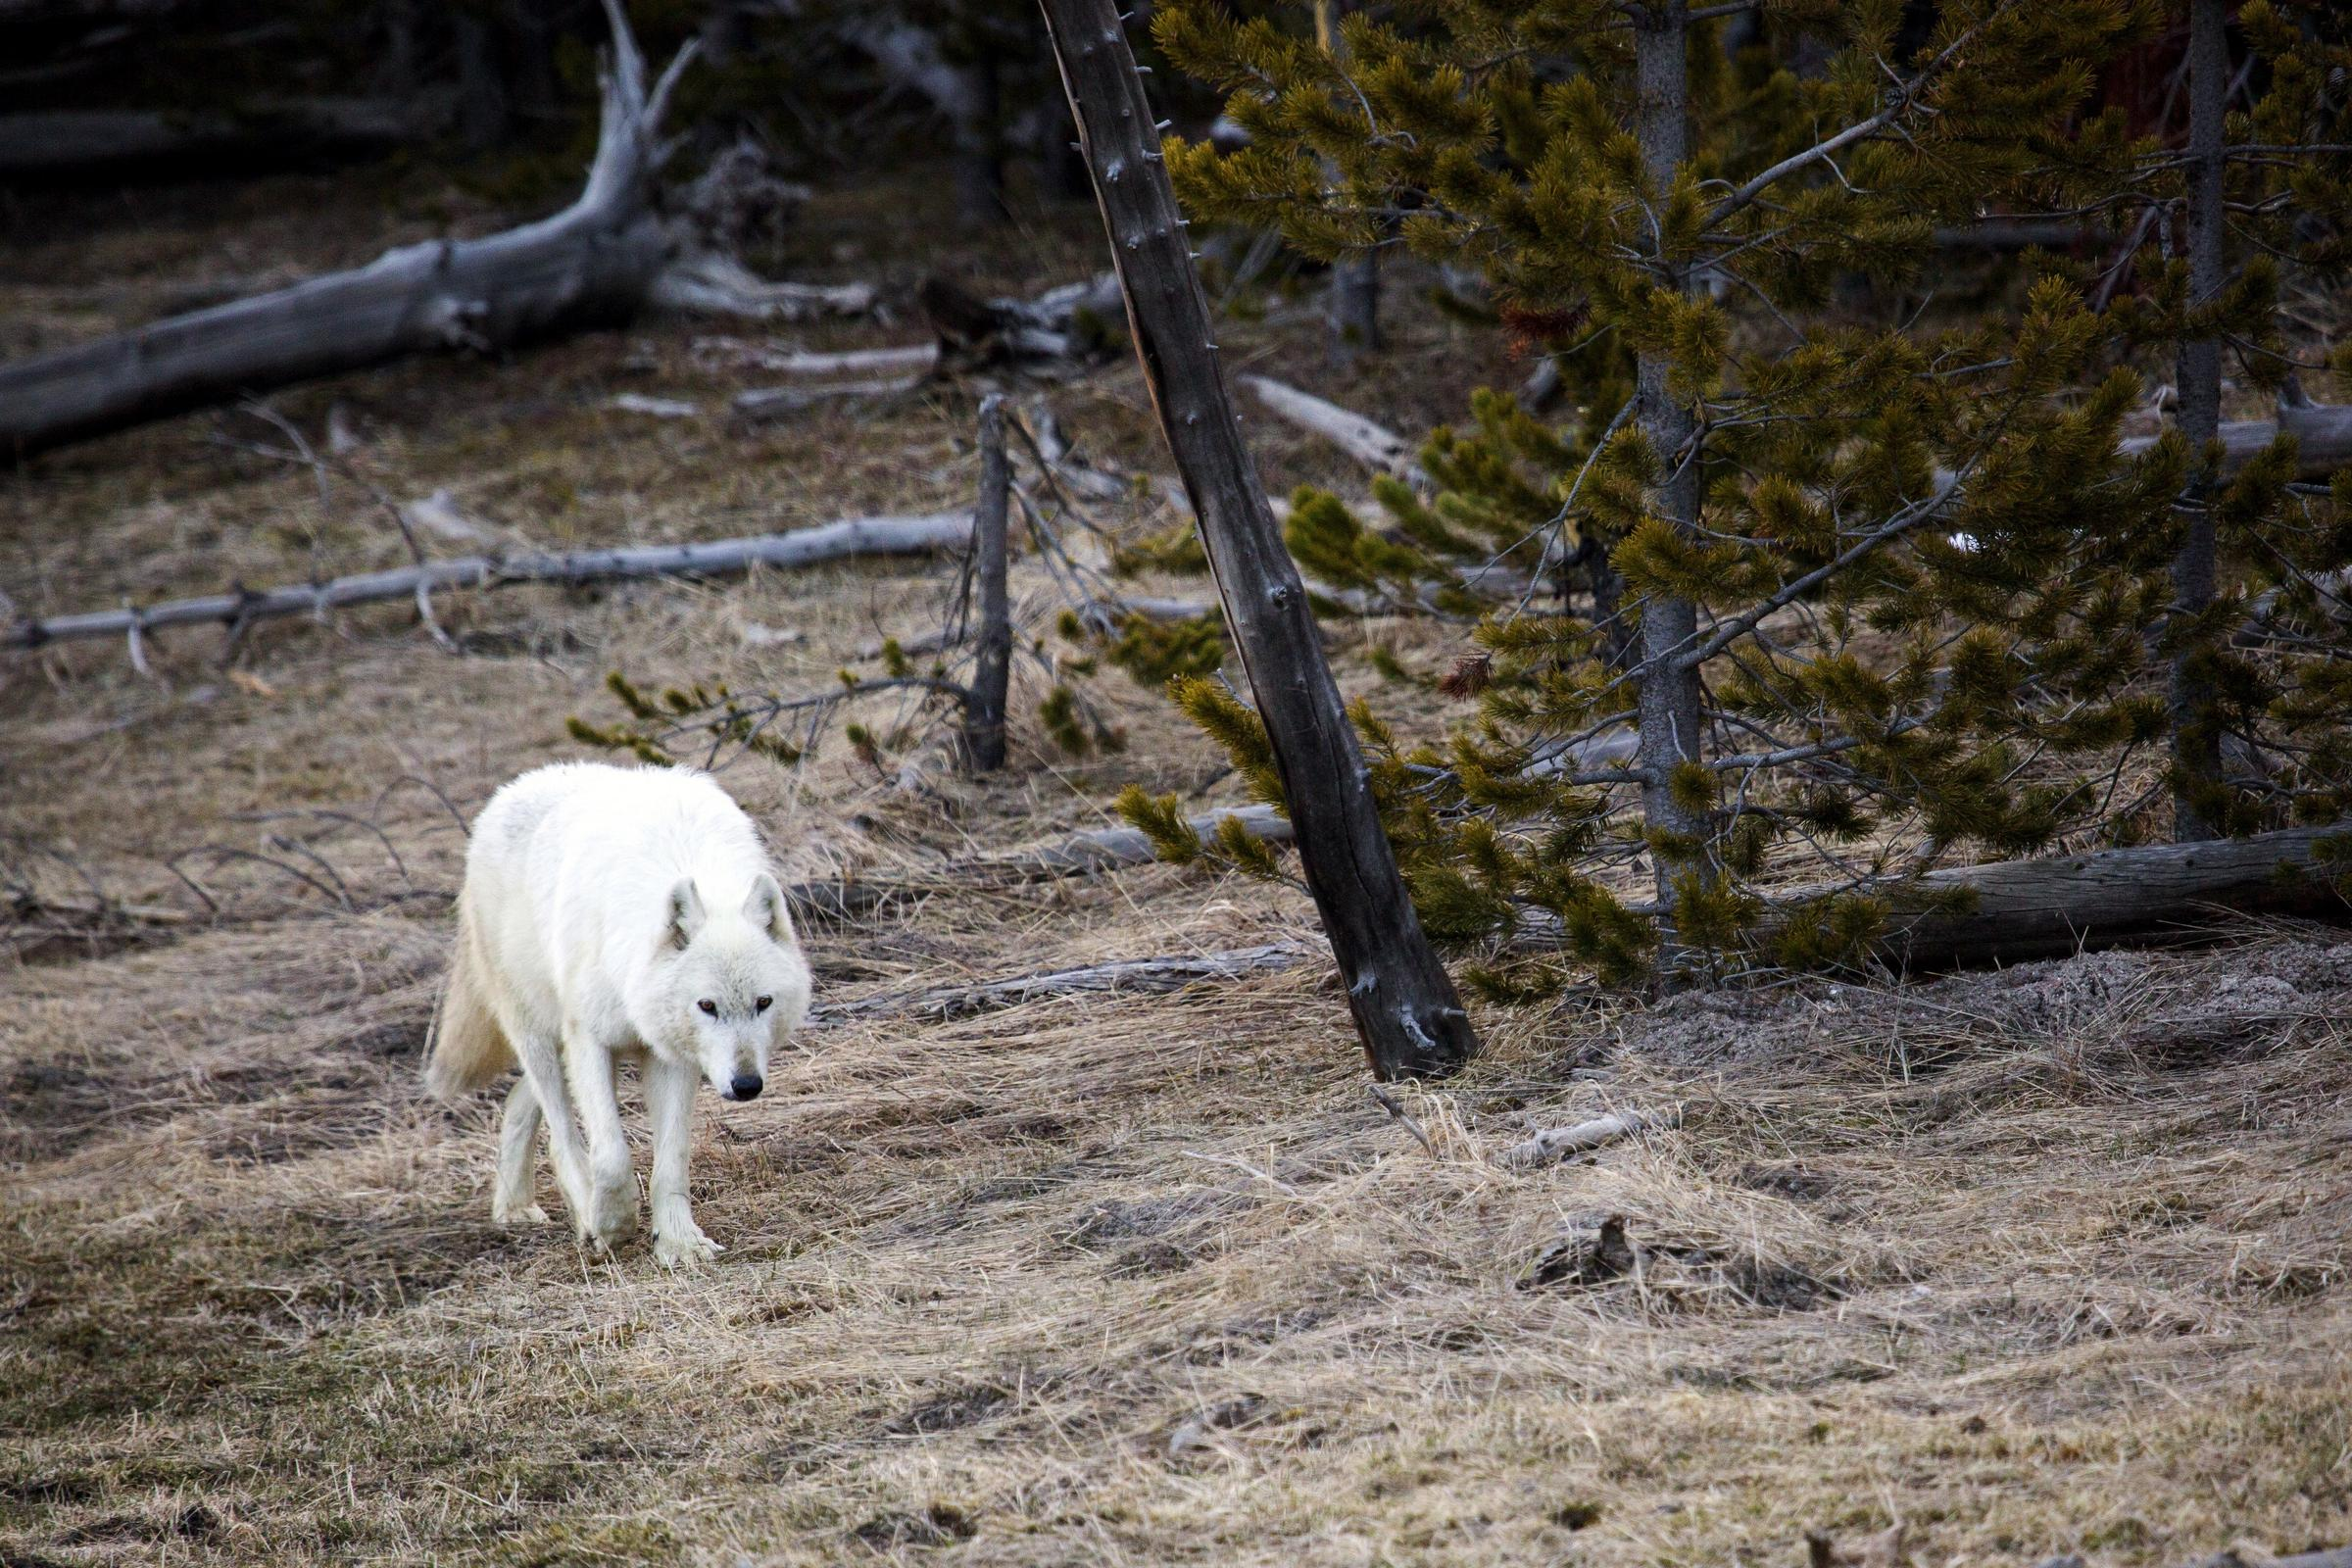 Yellowstone: White wolf was shot; $5000 reward offered